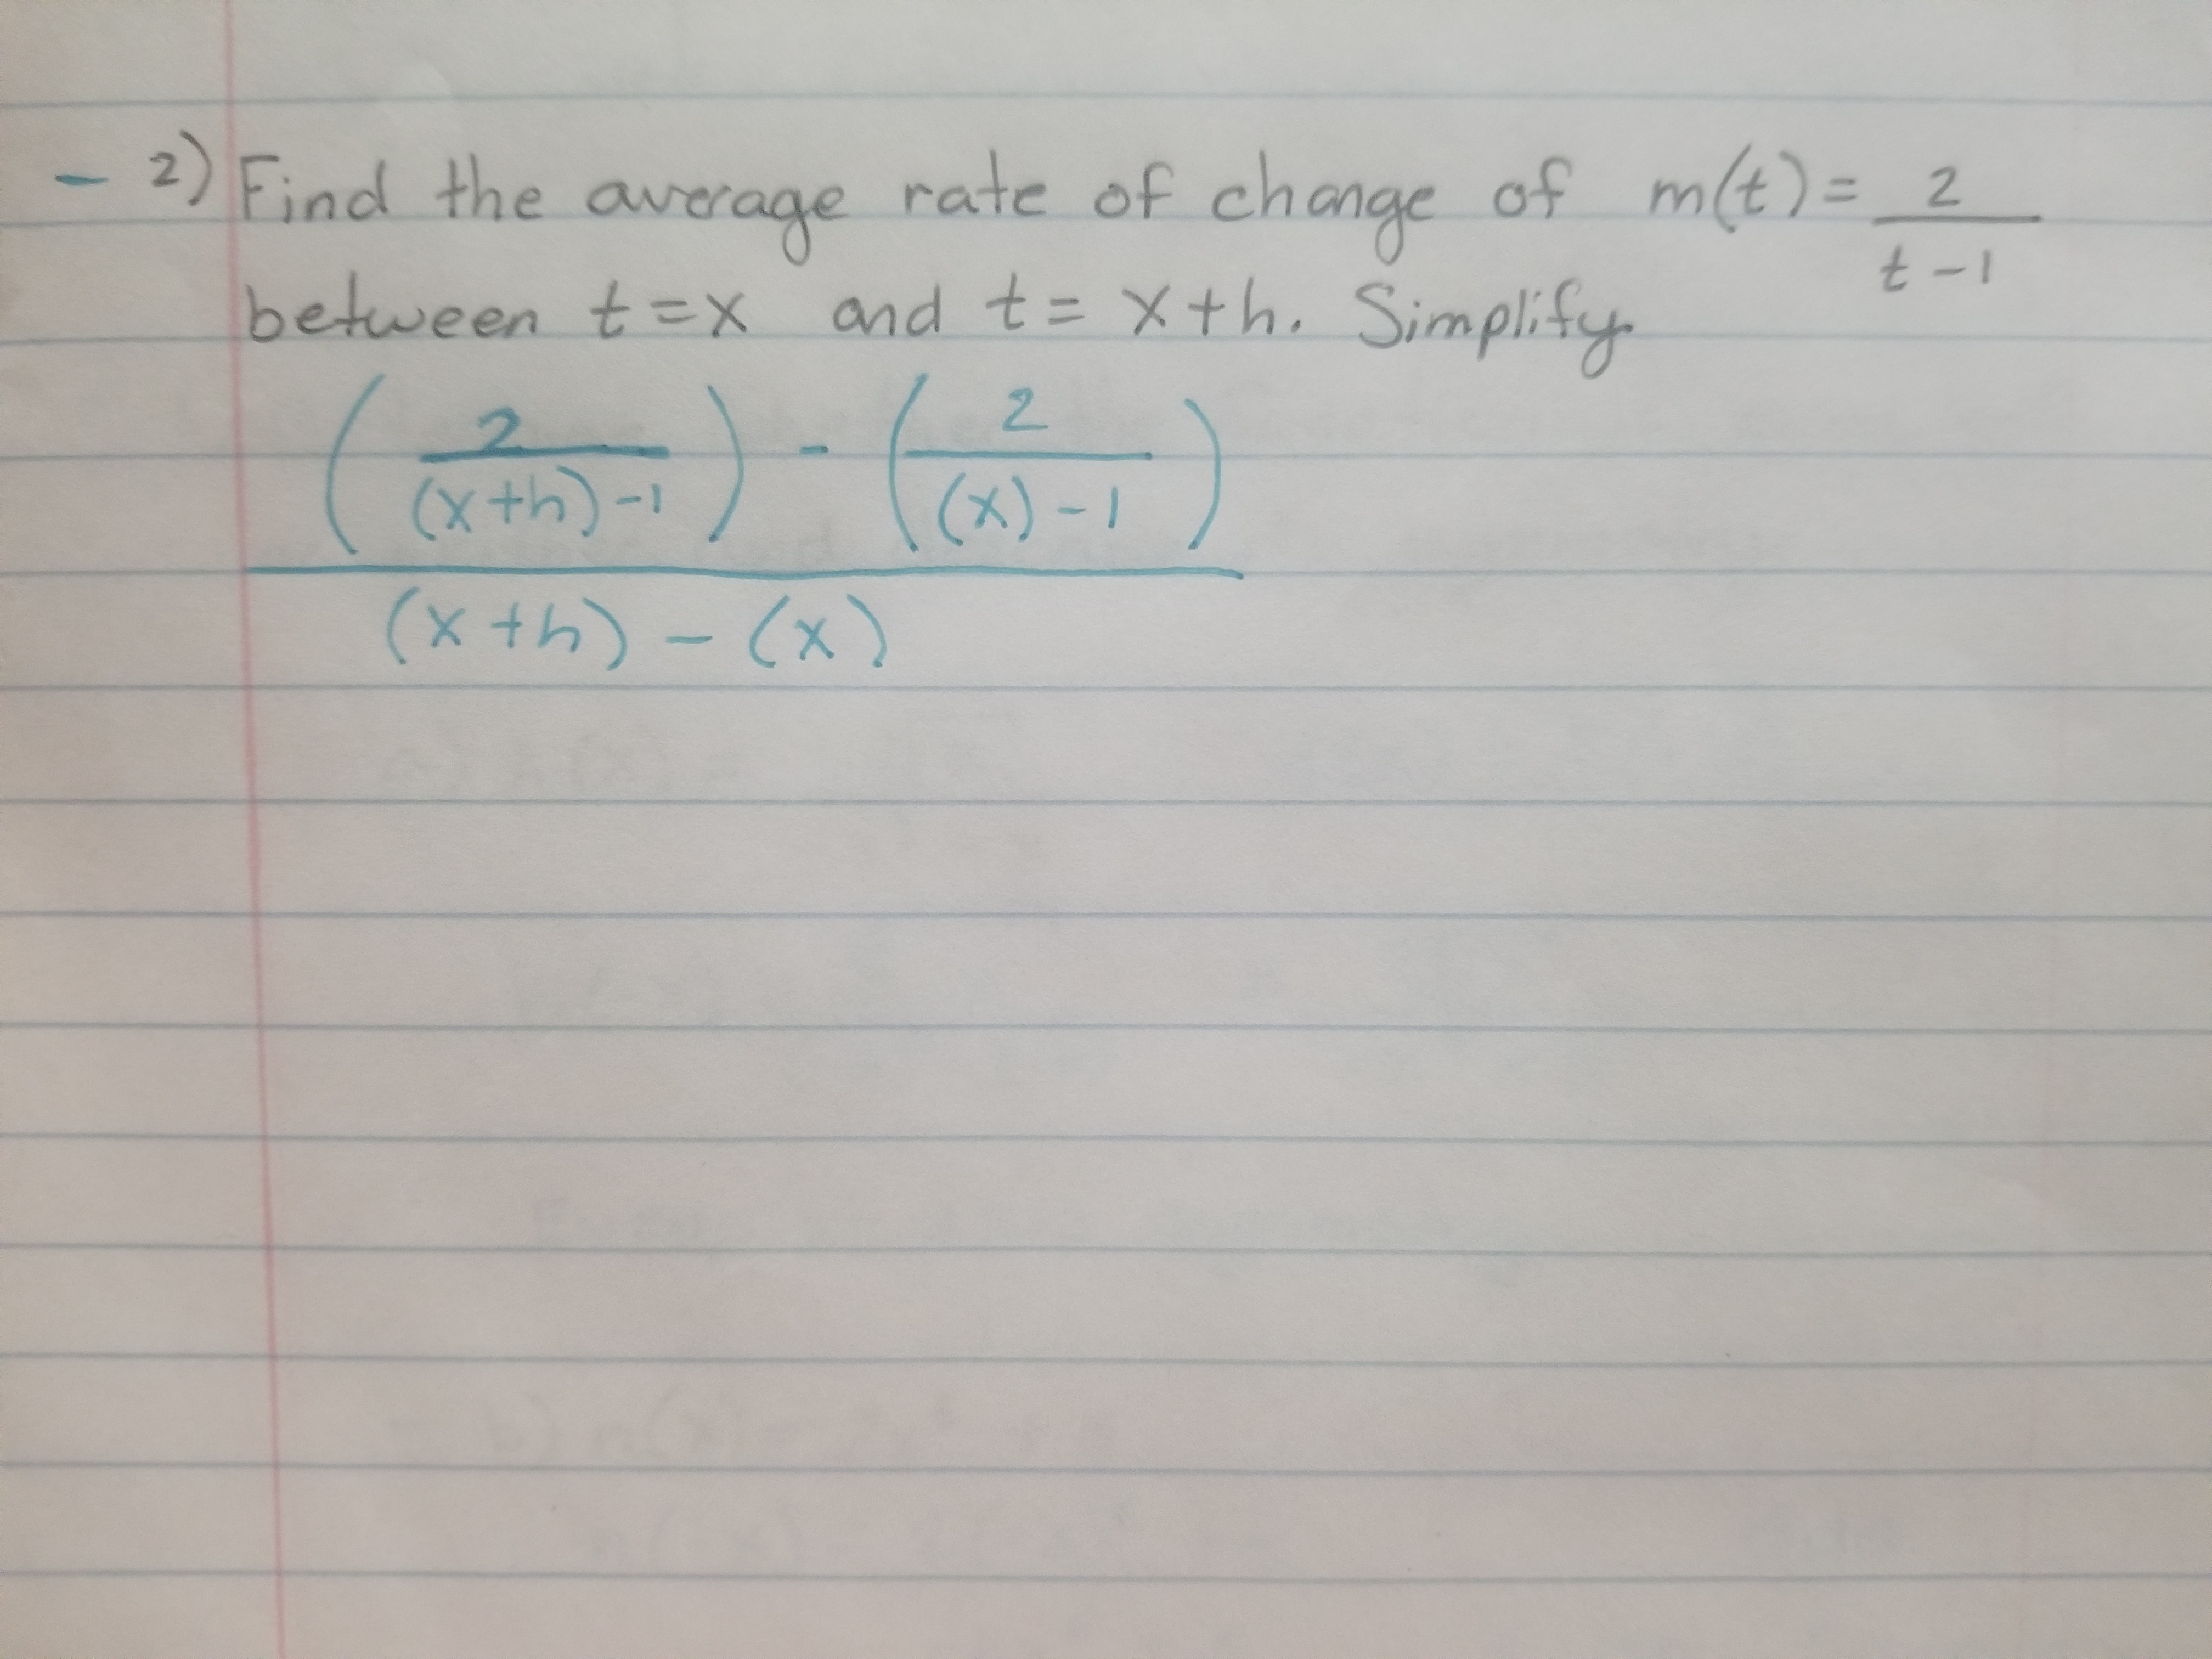 2 Find the average rate of change of mt)- 2 between tex and t xth. Simplify of ch 2 (xth) (x)- (xth)-x